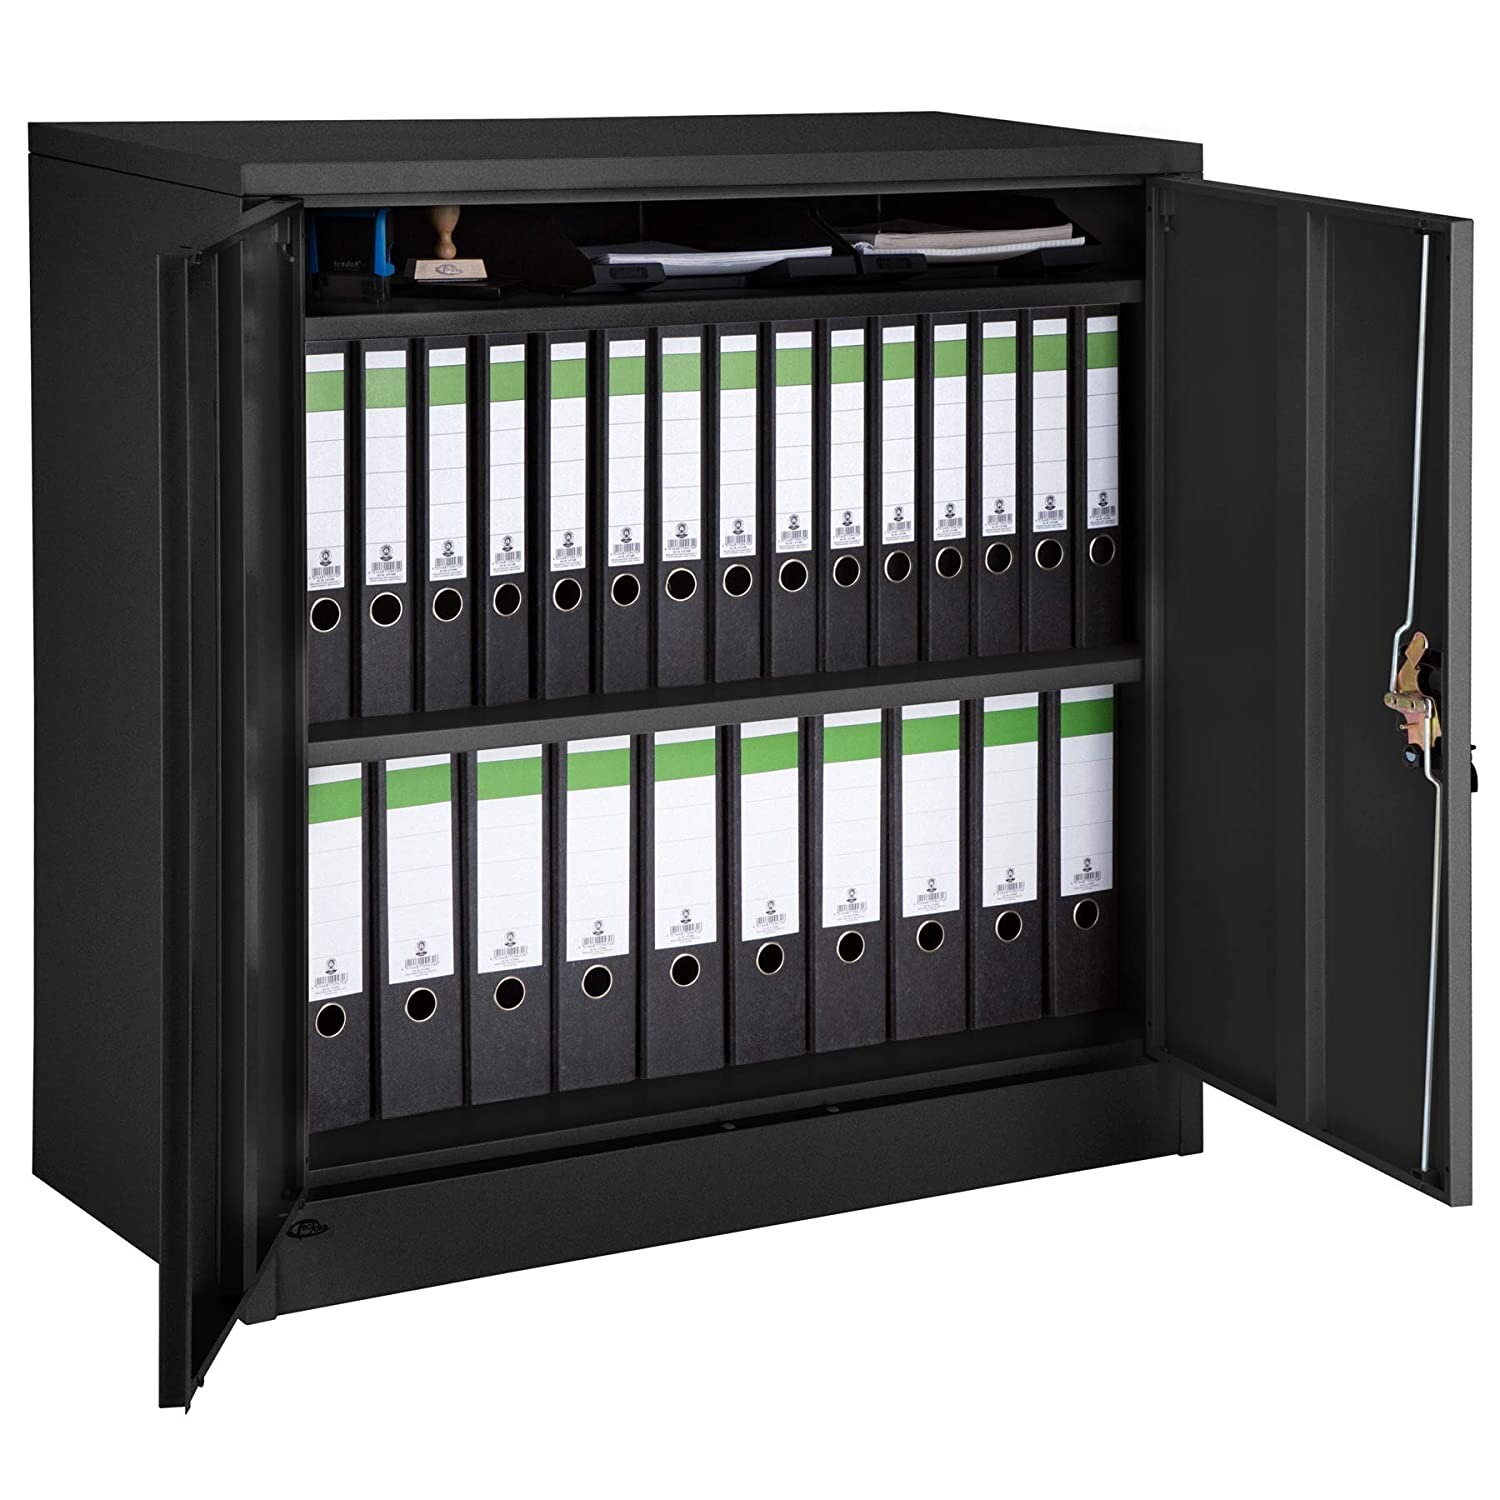 TecTake 800598 - Filing cabinet black, Shelves 2-door and Lock system - Different Models (Type 1 | No. 402937)